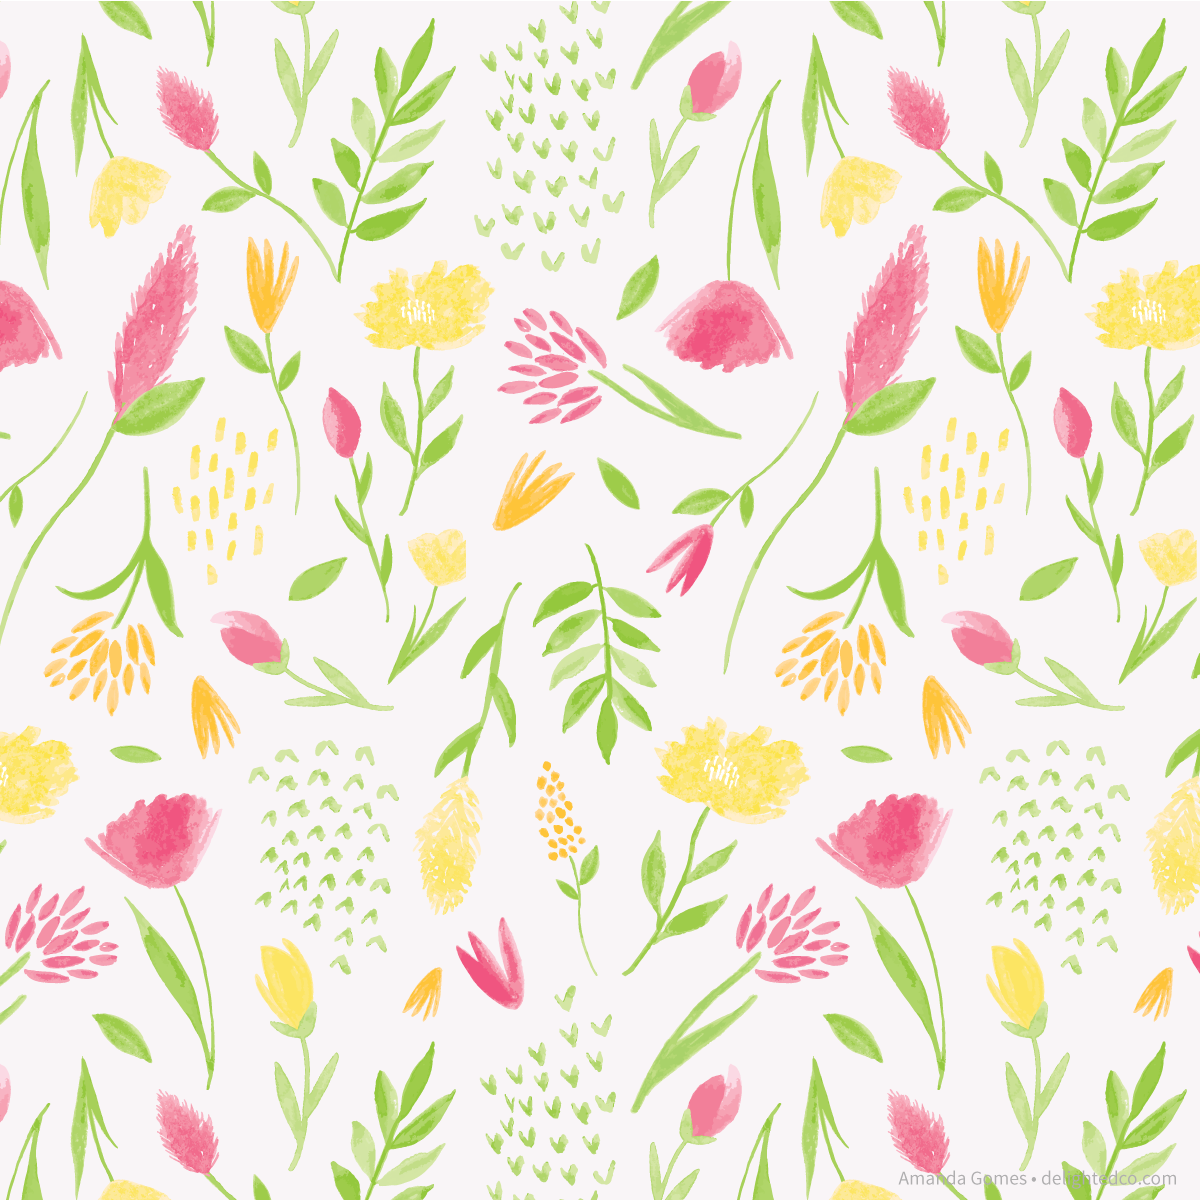 Floral Pattern by Amanda Gomes • Delighted Creative Co.